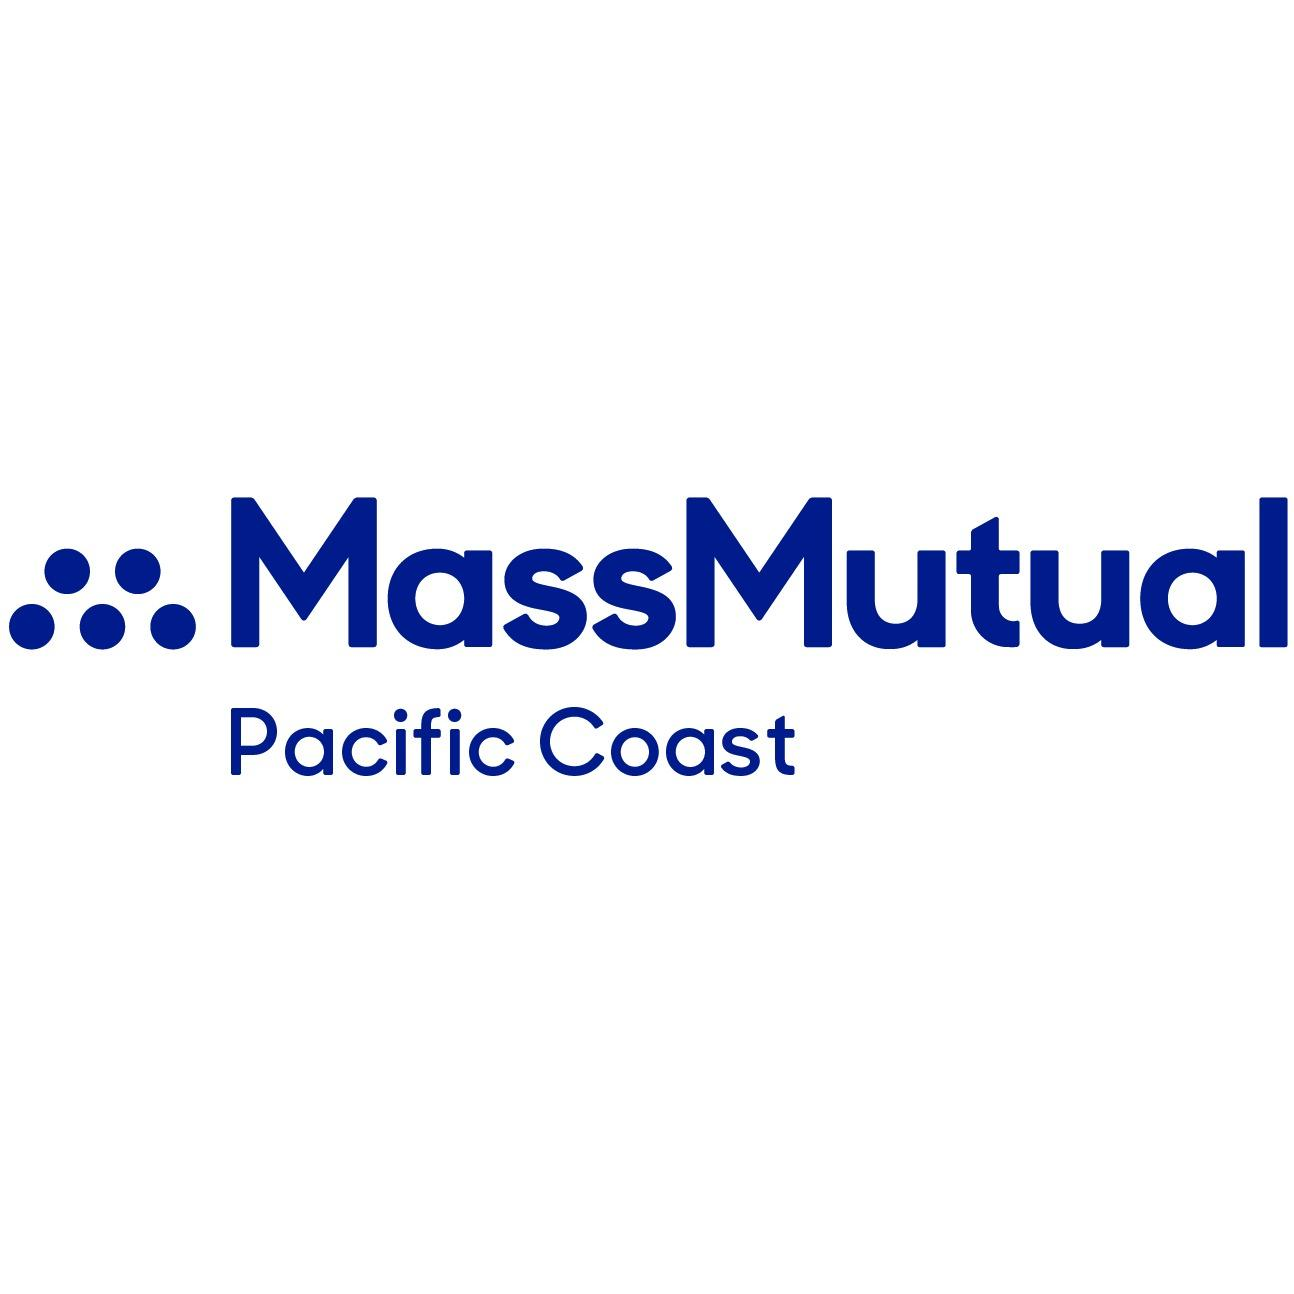 MassMutual Pacific Coast